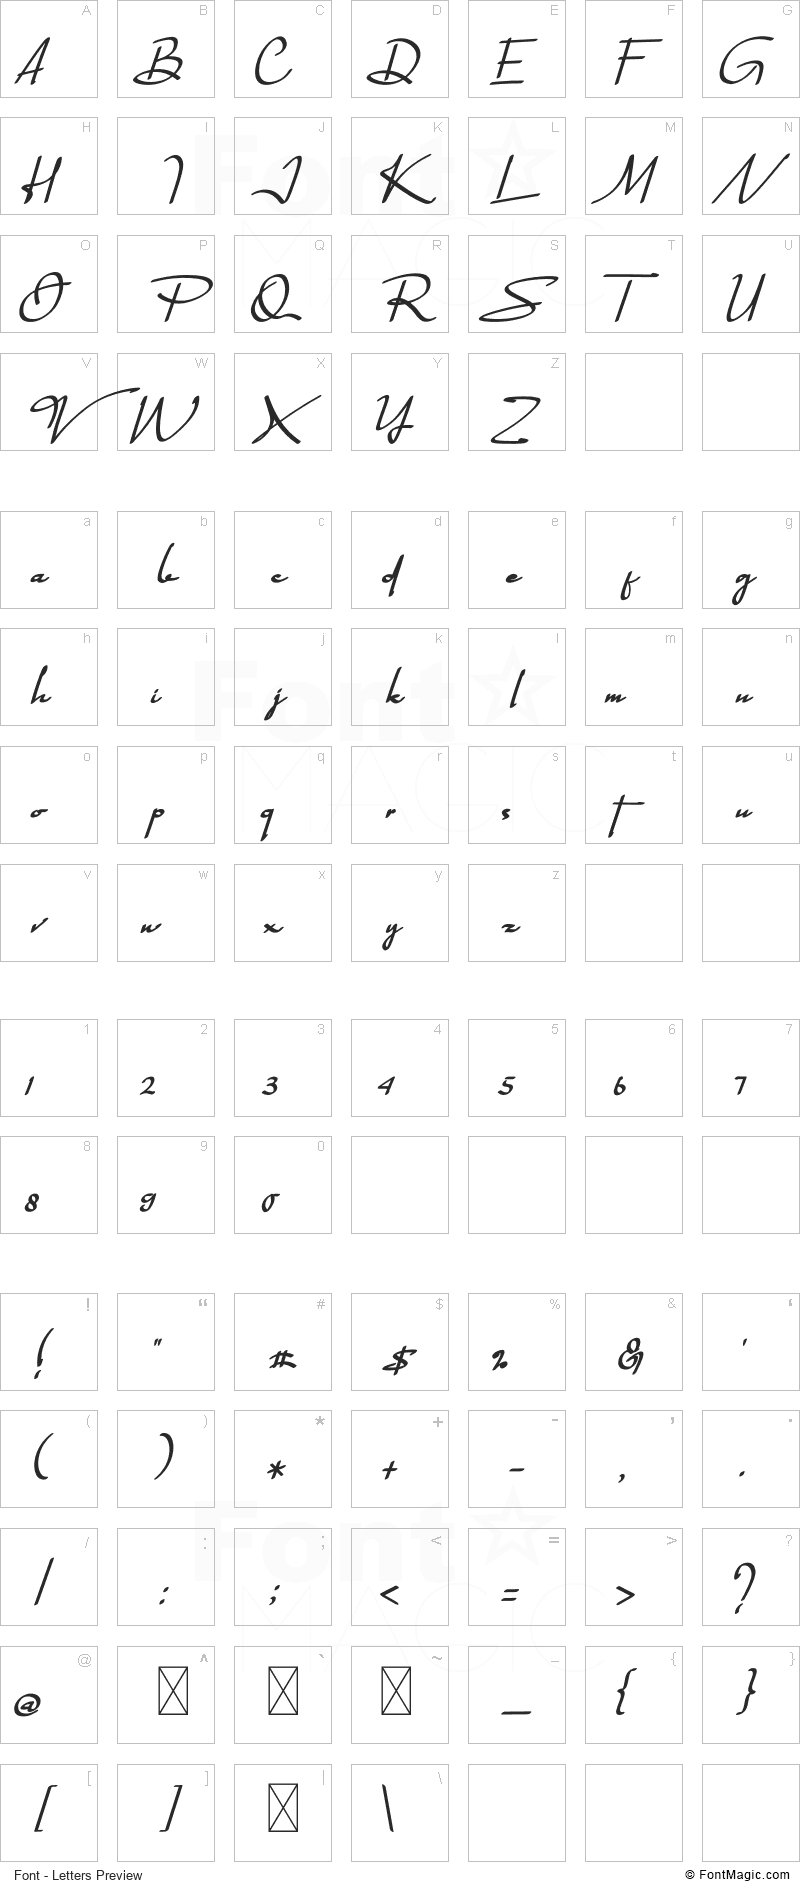 Quagralle Font - All Latters Preview Chart